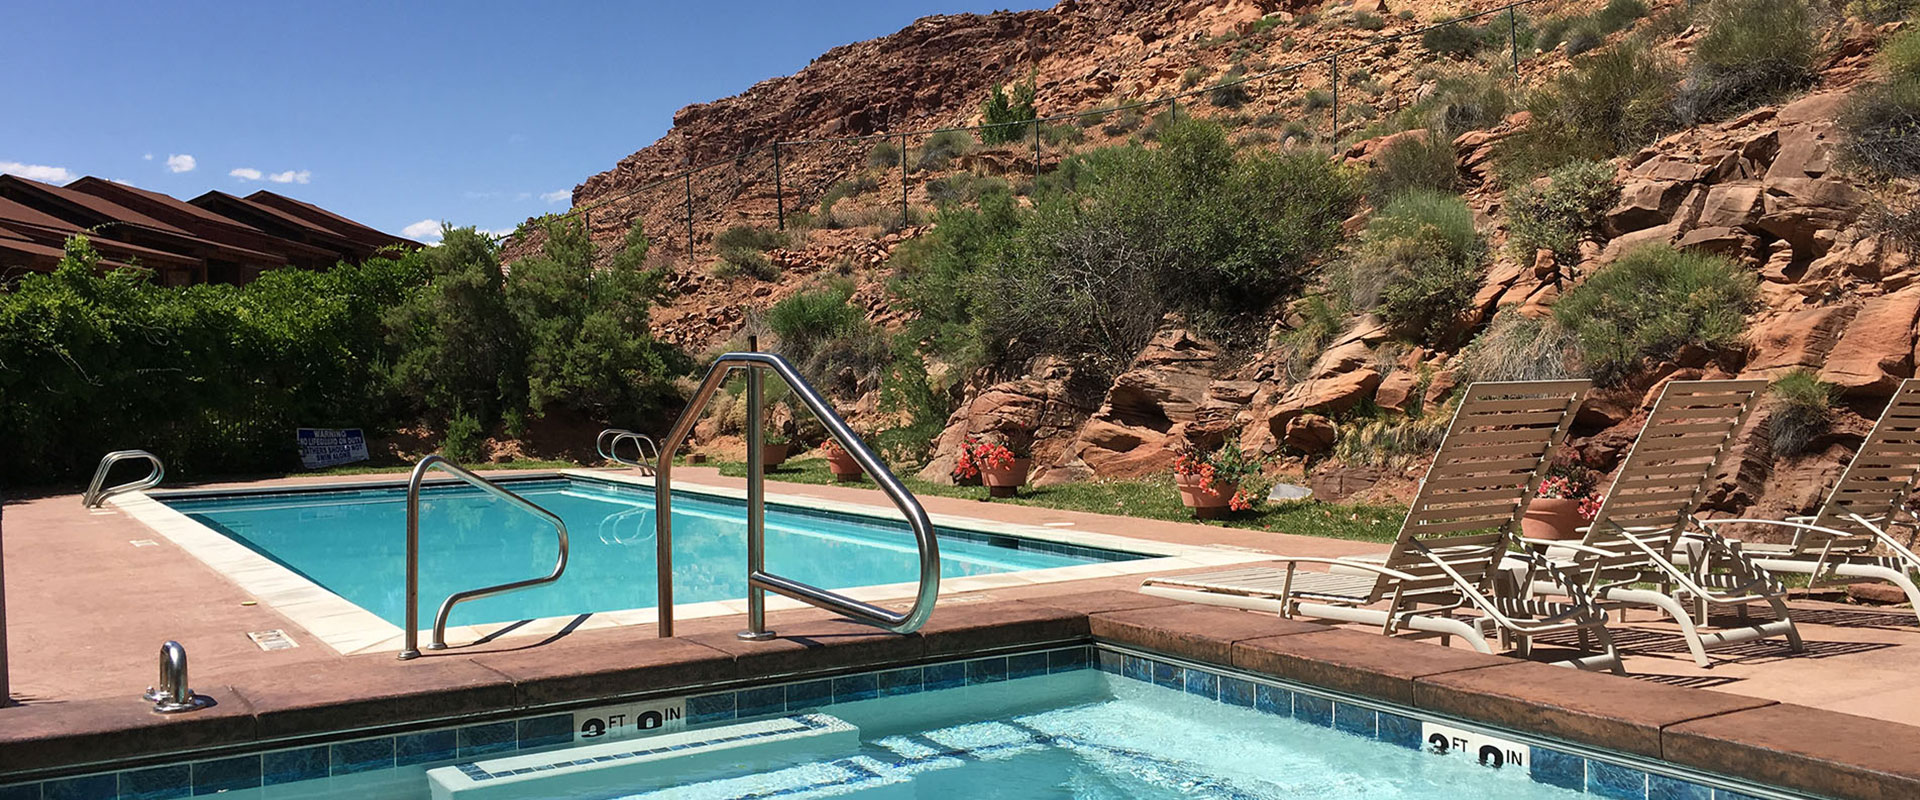 The Moab Springs Ranch road sign, illuminated by silver gooseneck lamps, is placed amongst a towering tree, weather-worn boulders and green vegetation.